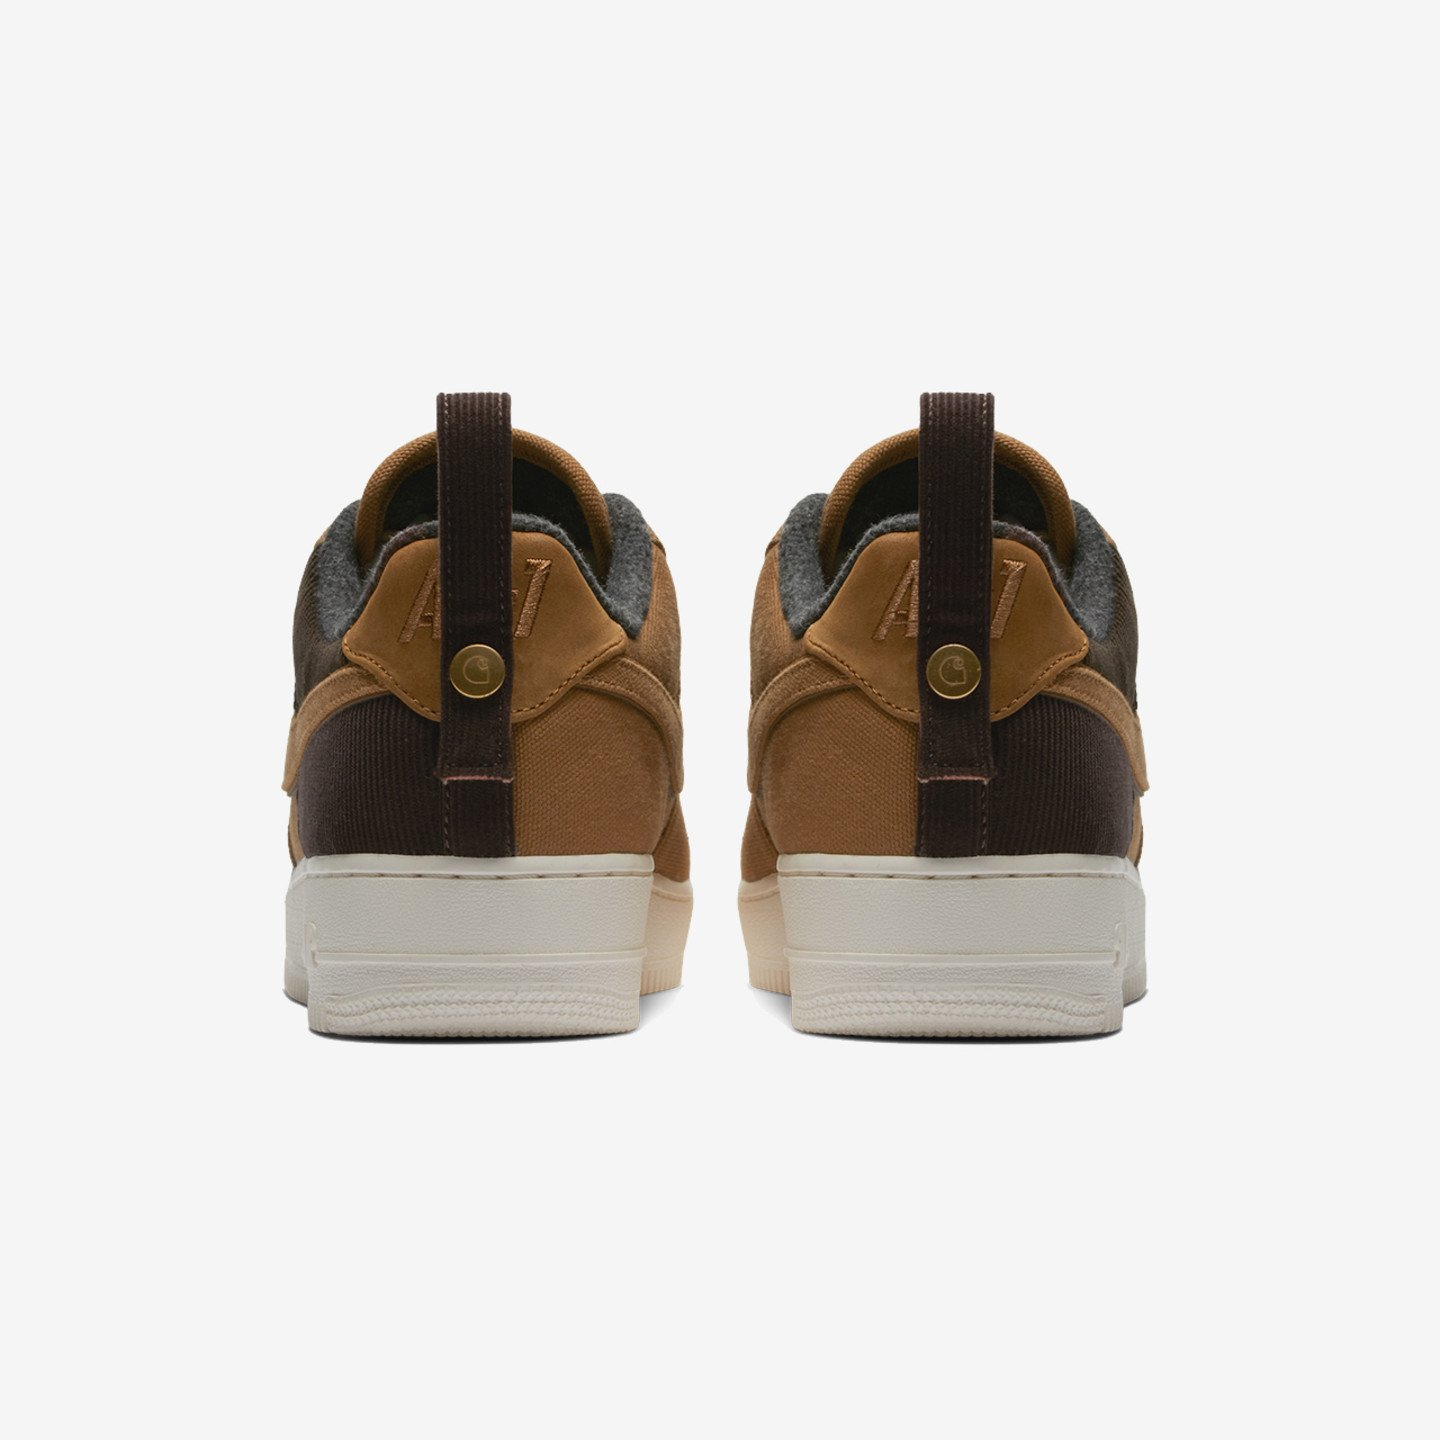 Nike Air Force 1 07 Premium x Carhartt WIP Ale Brown / Sail AV4113-200